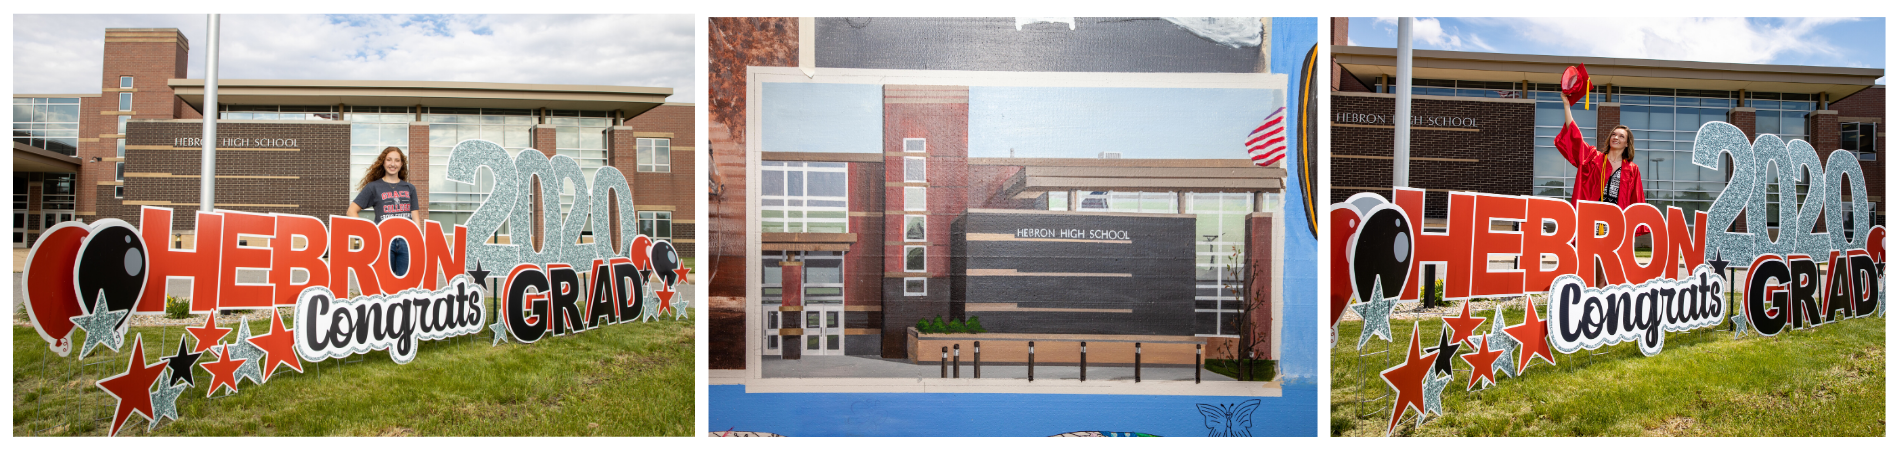 3 photo collage: Left: Senior with graduation sign. Center: Painting of the HS in the town mural. Right: Senior in cap and gown with graduation sign.